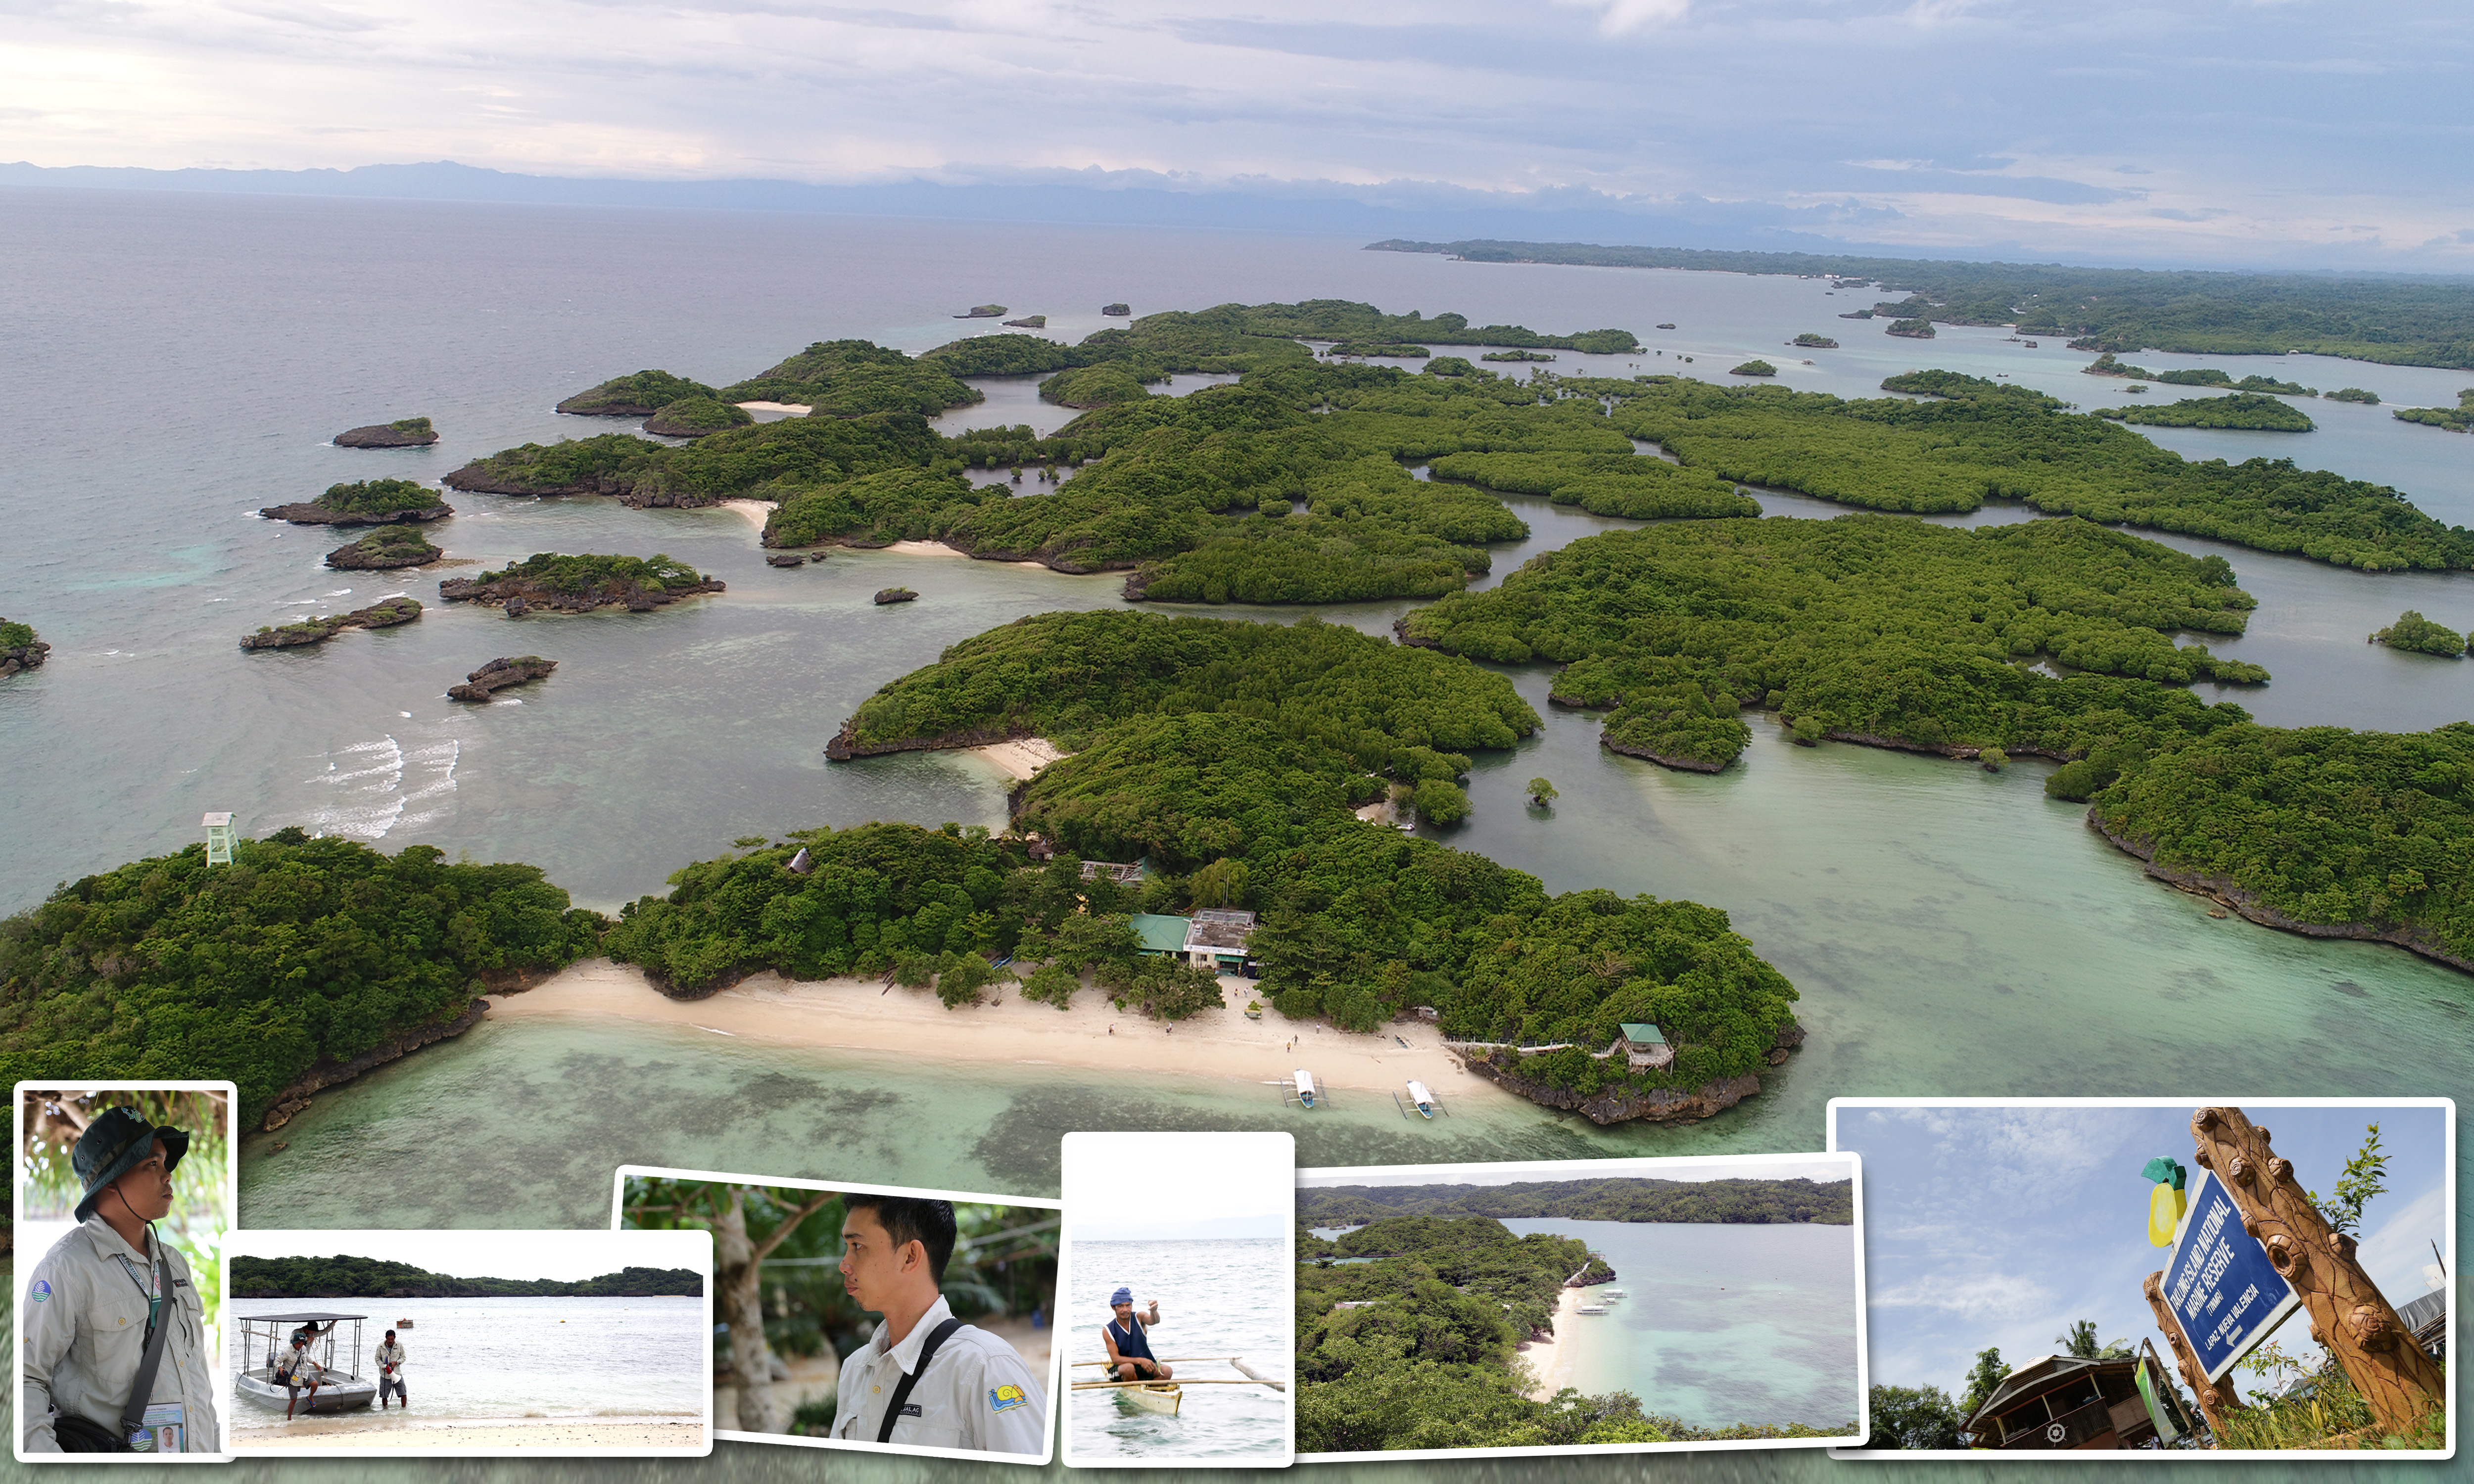 Taklong Island NMR: 'Jewel of Guimaras'